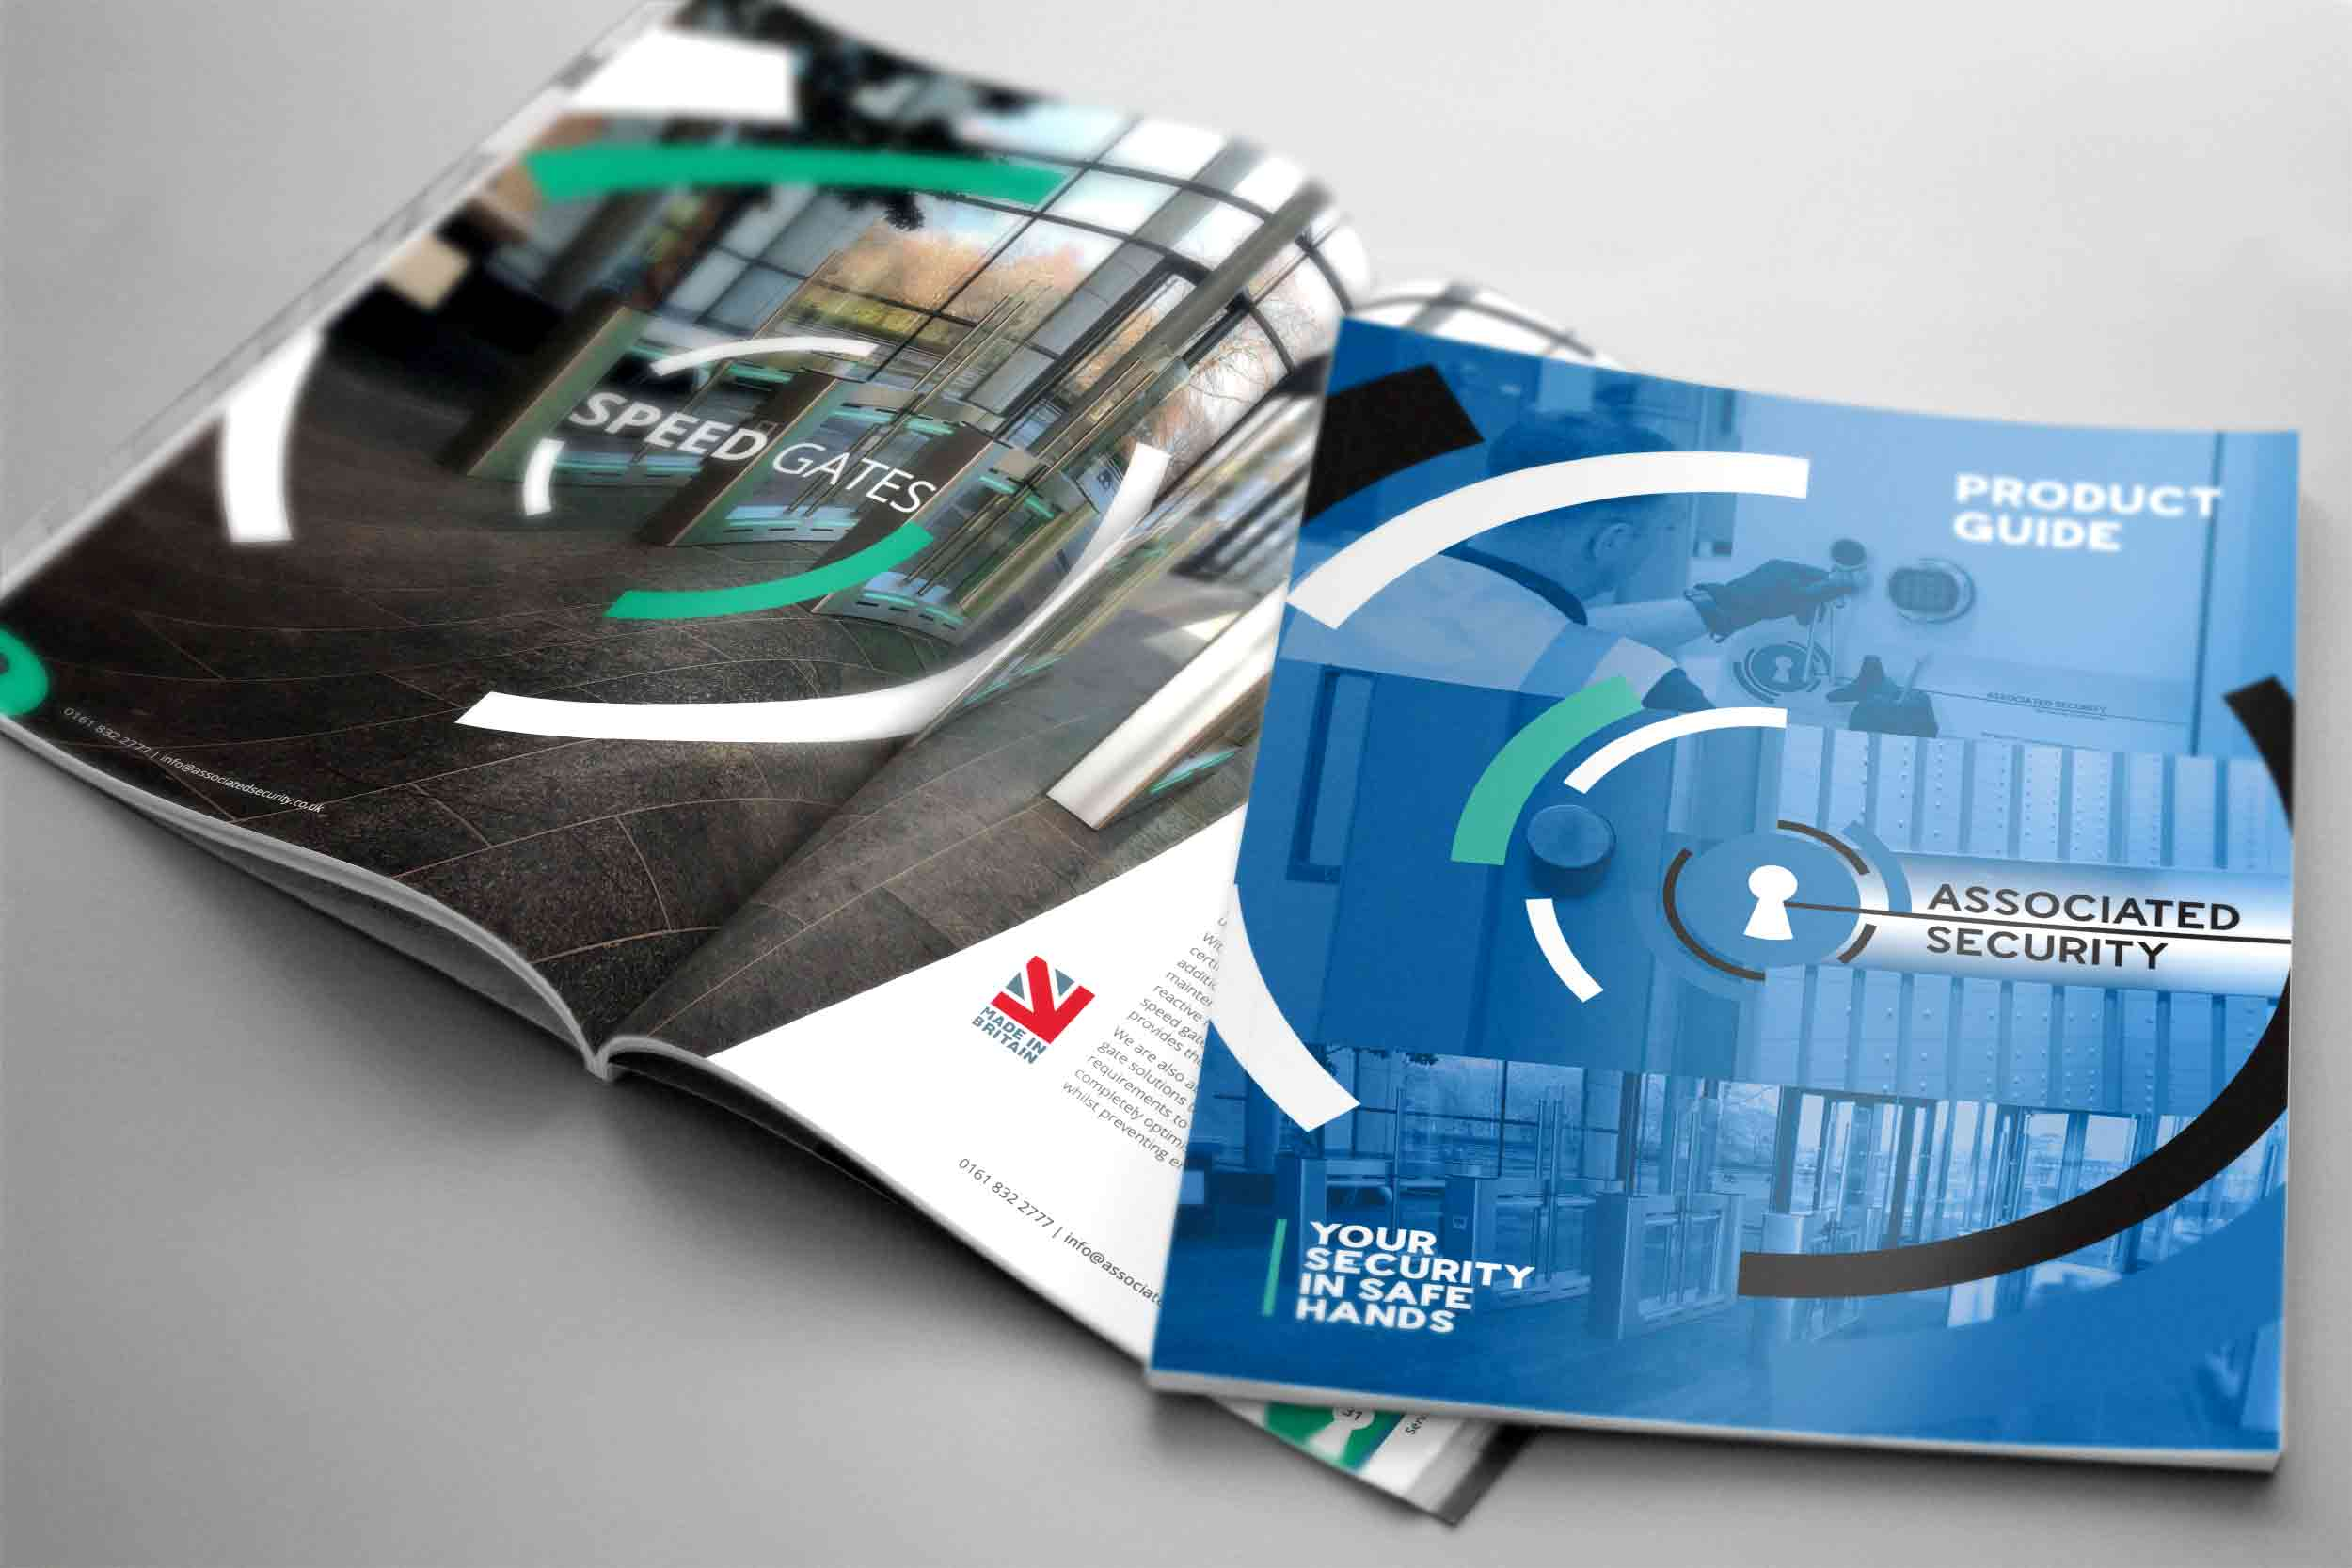 Associated Security Product Guide